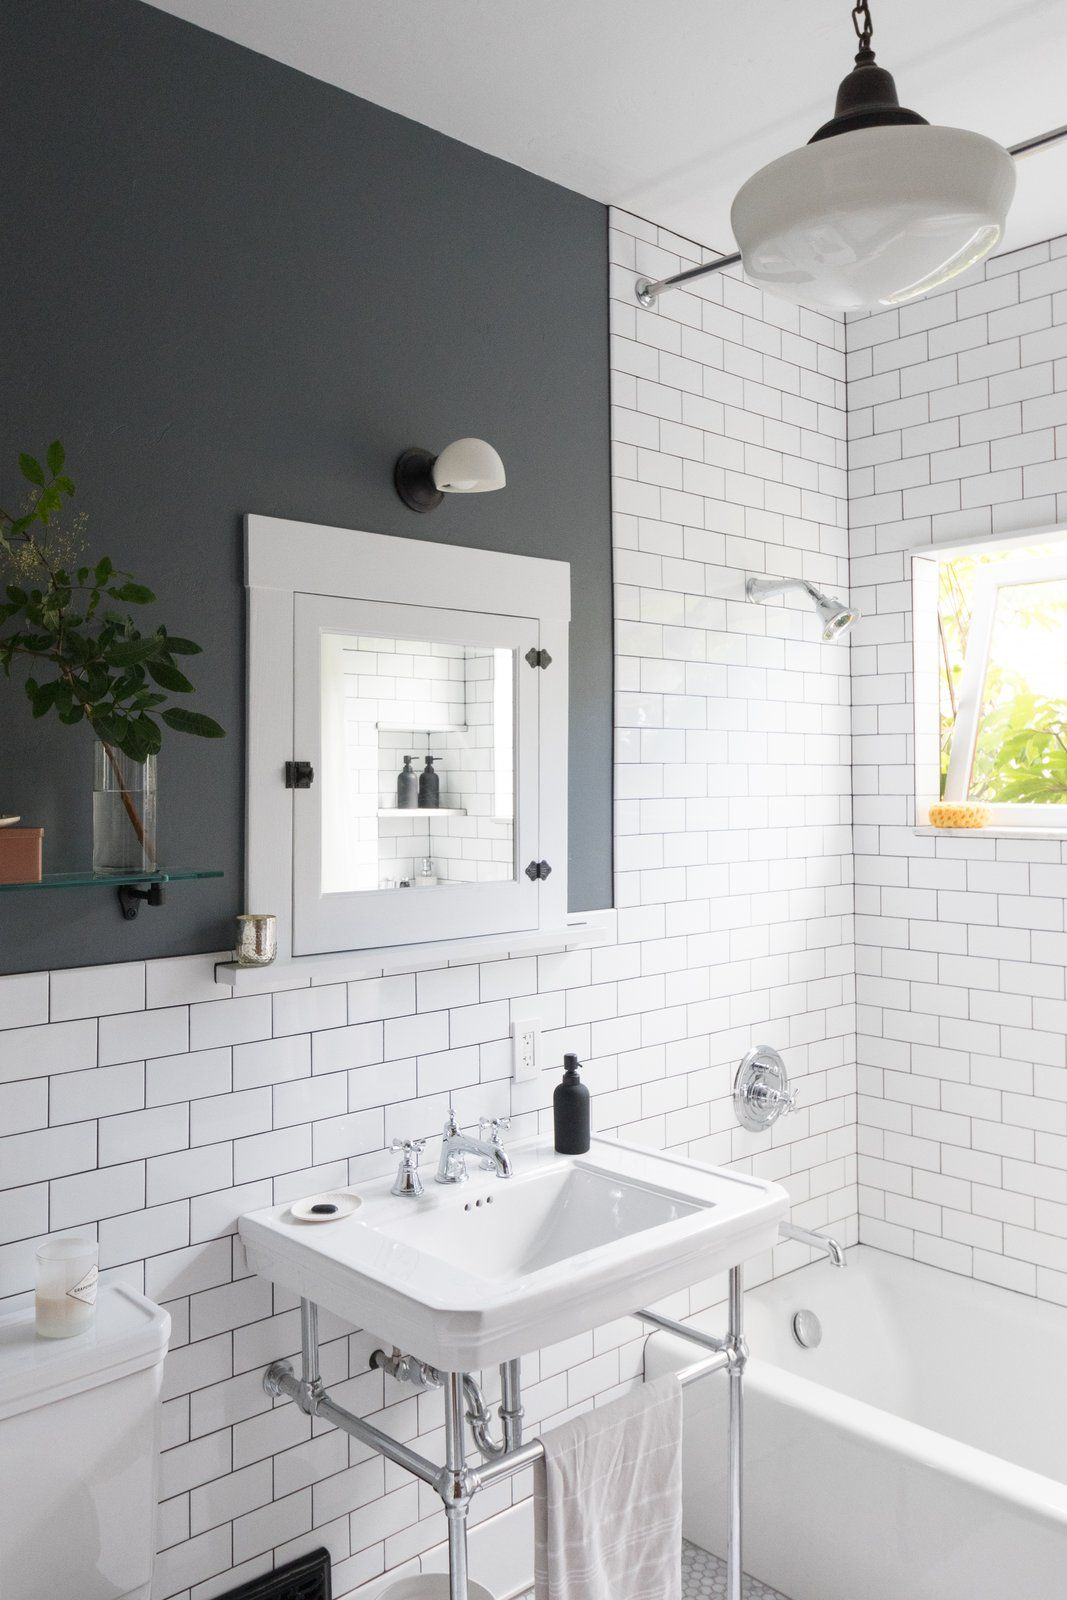 Photo 100 Of 170 In Best Bath Subway Tile Photos From Before After A Diy Couple Tackle Their Vintage Bathroom Lighting Craftsman Bathroom Bathroom Interior